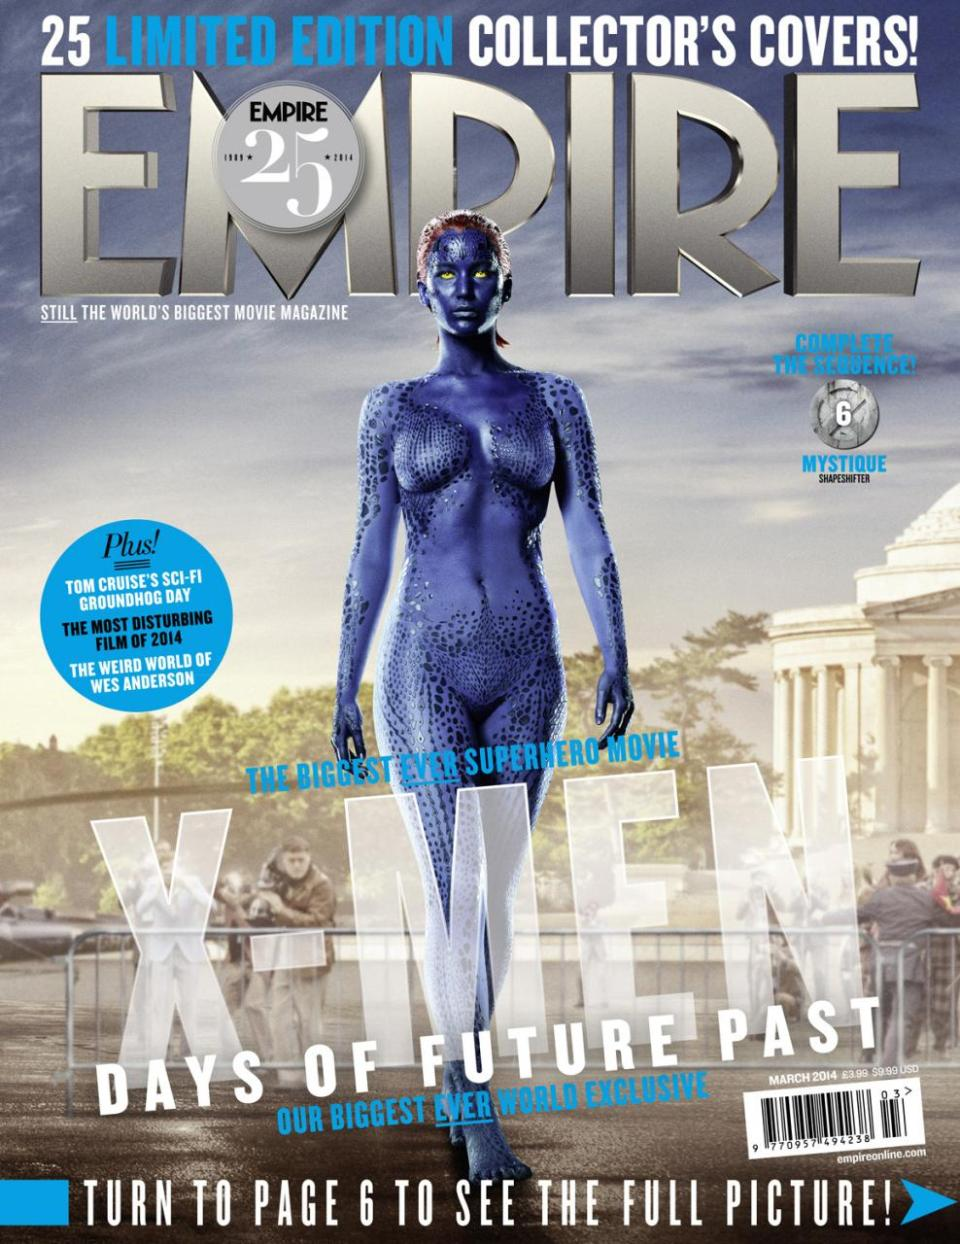 X-MEN DAYS OF FUTURE PAST Character Magazine Covers